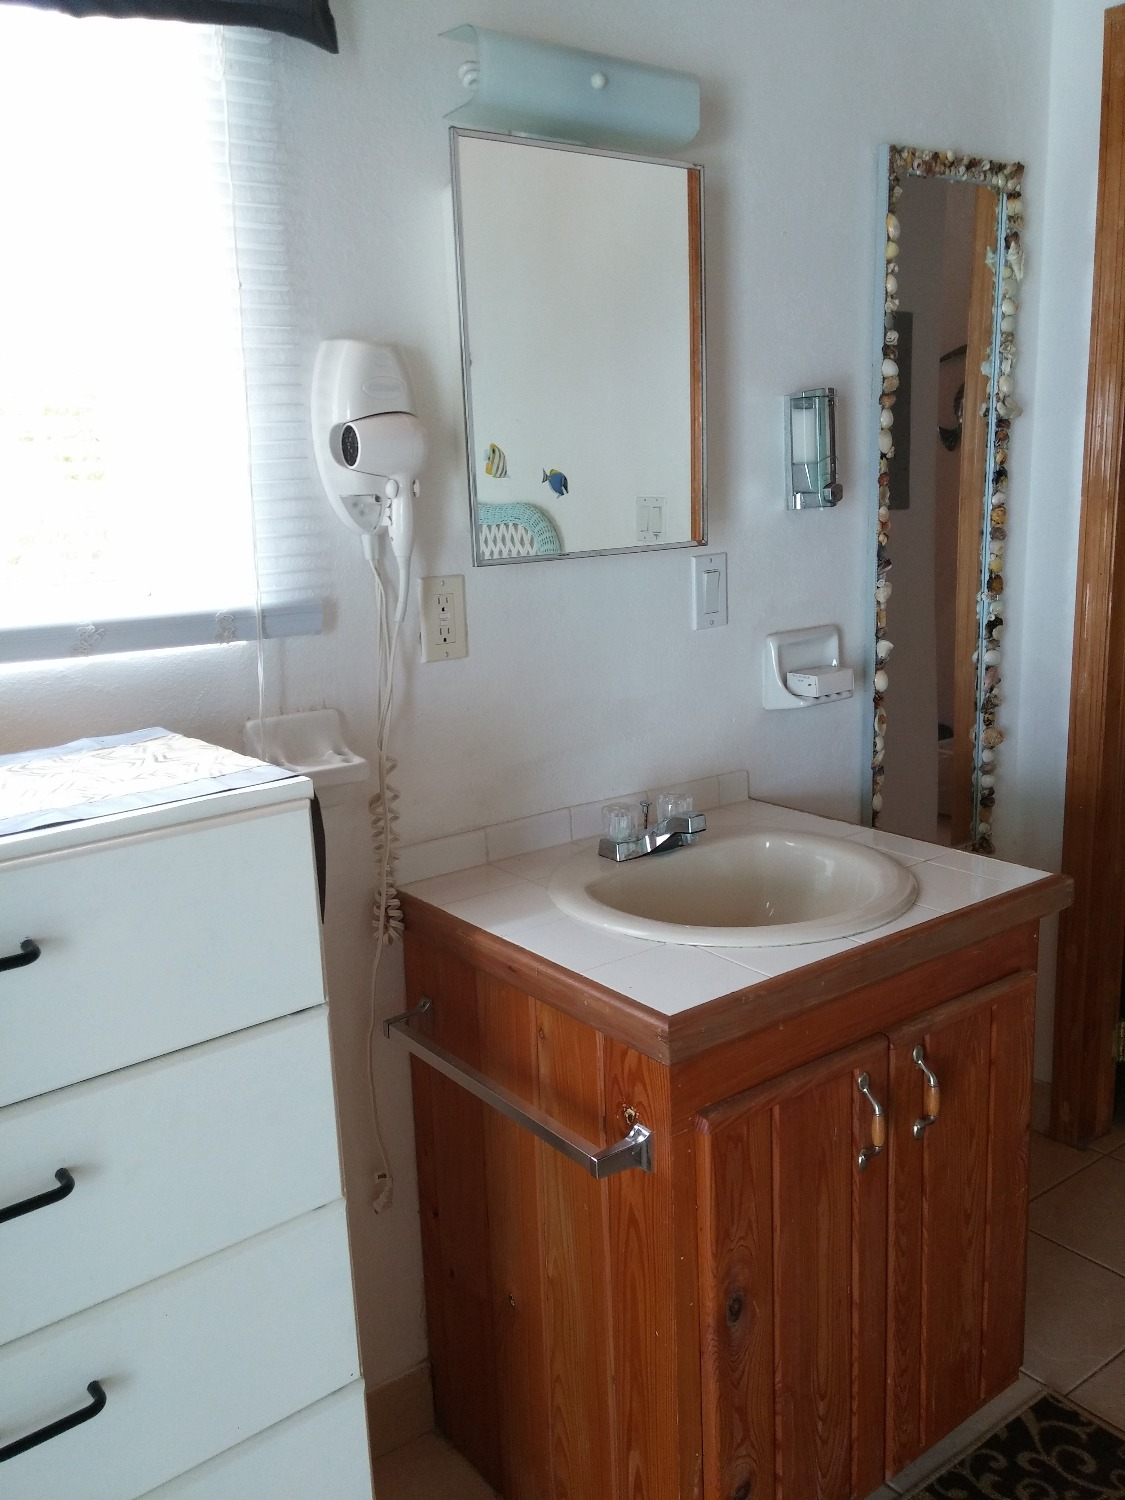 Sink and counter in the bedroom